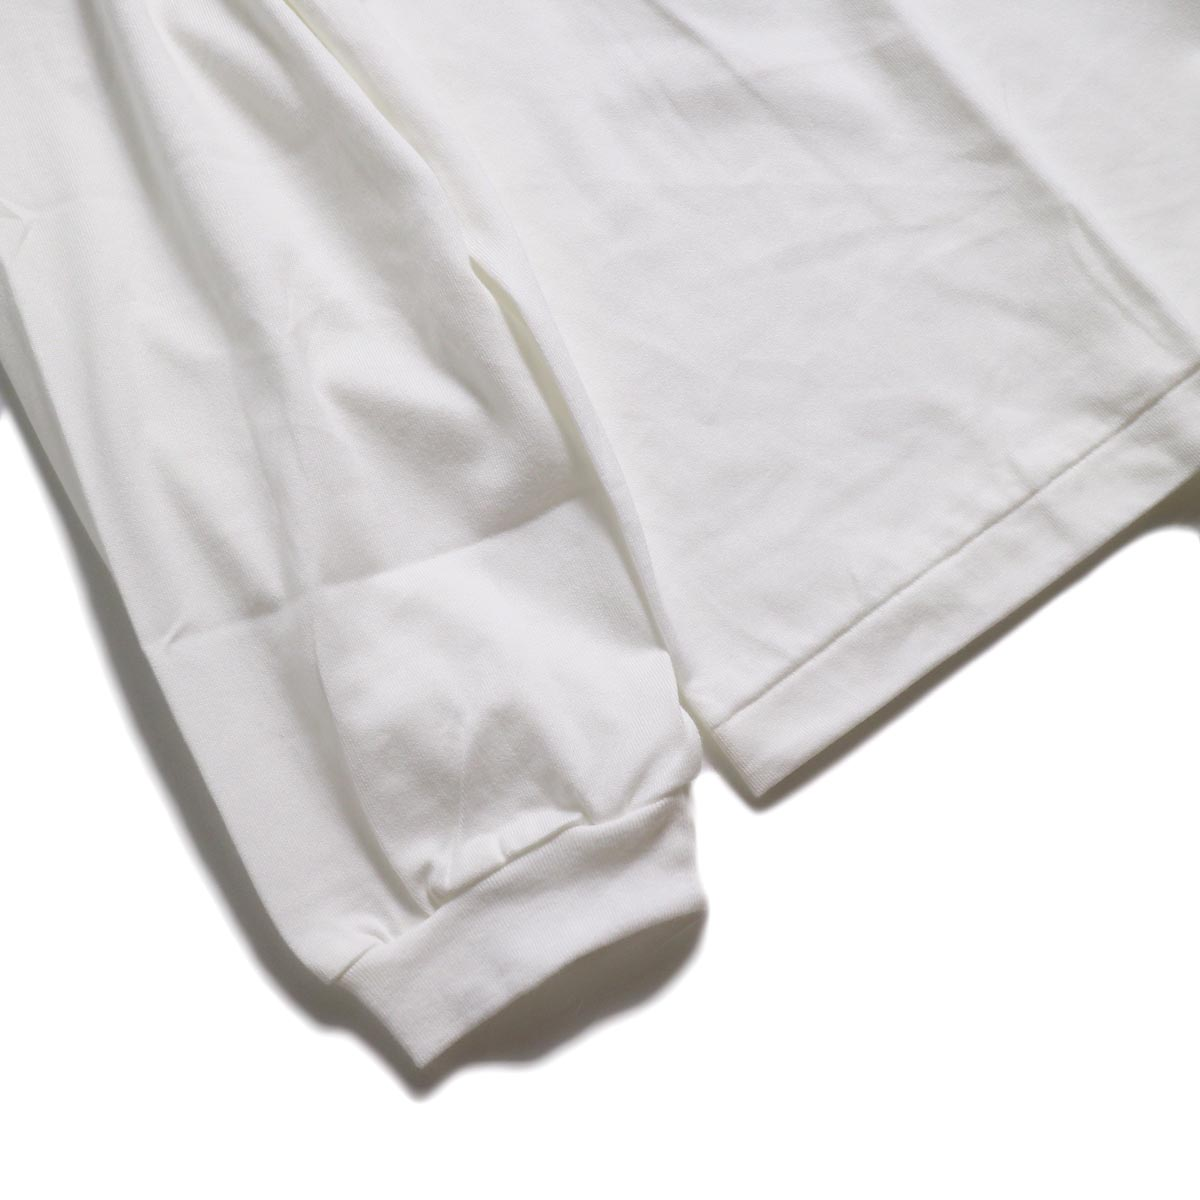 JANE SMITH / MORESE COD L/S T-SHIRT -White 袖